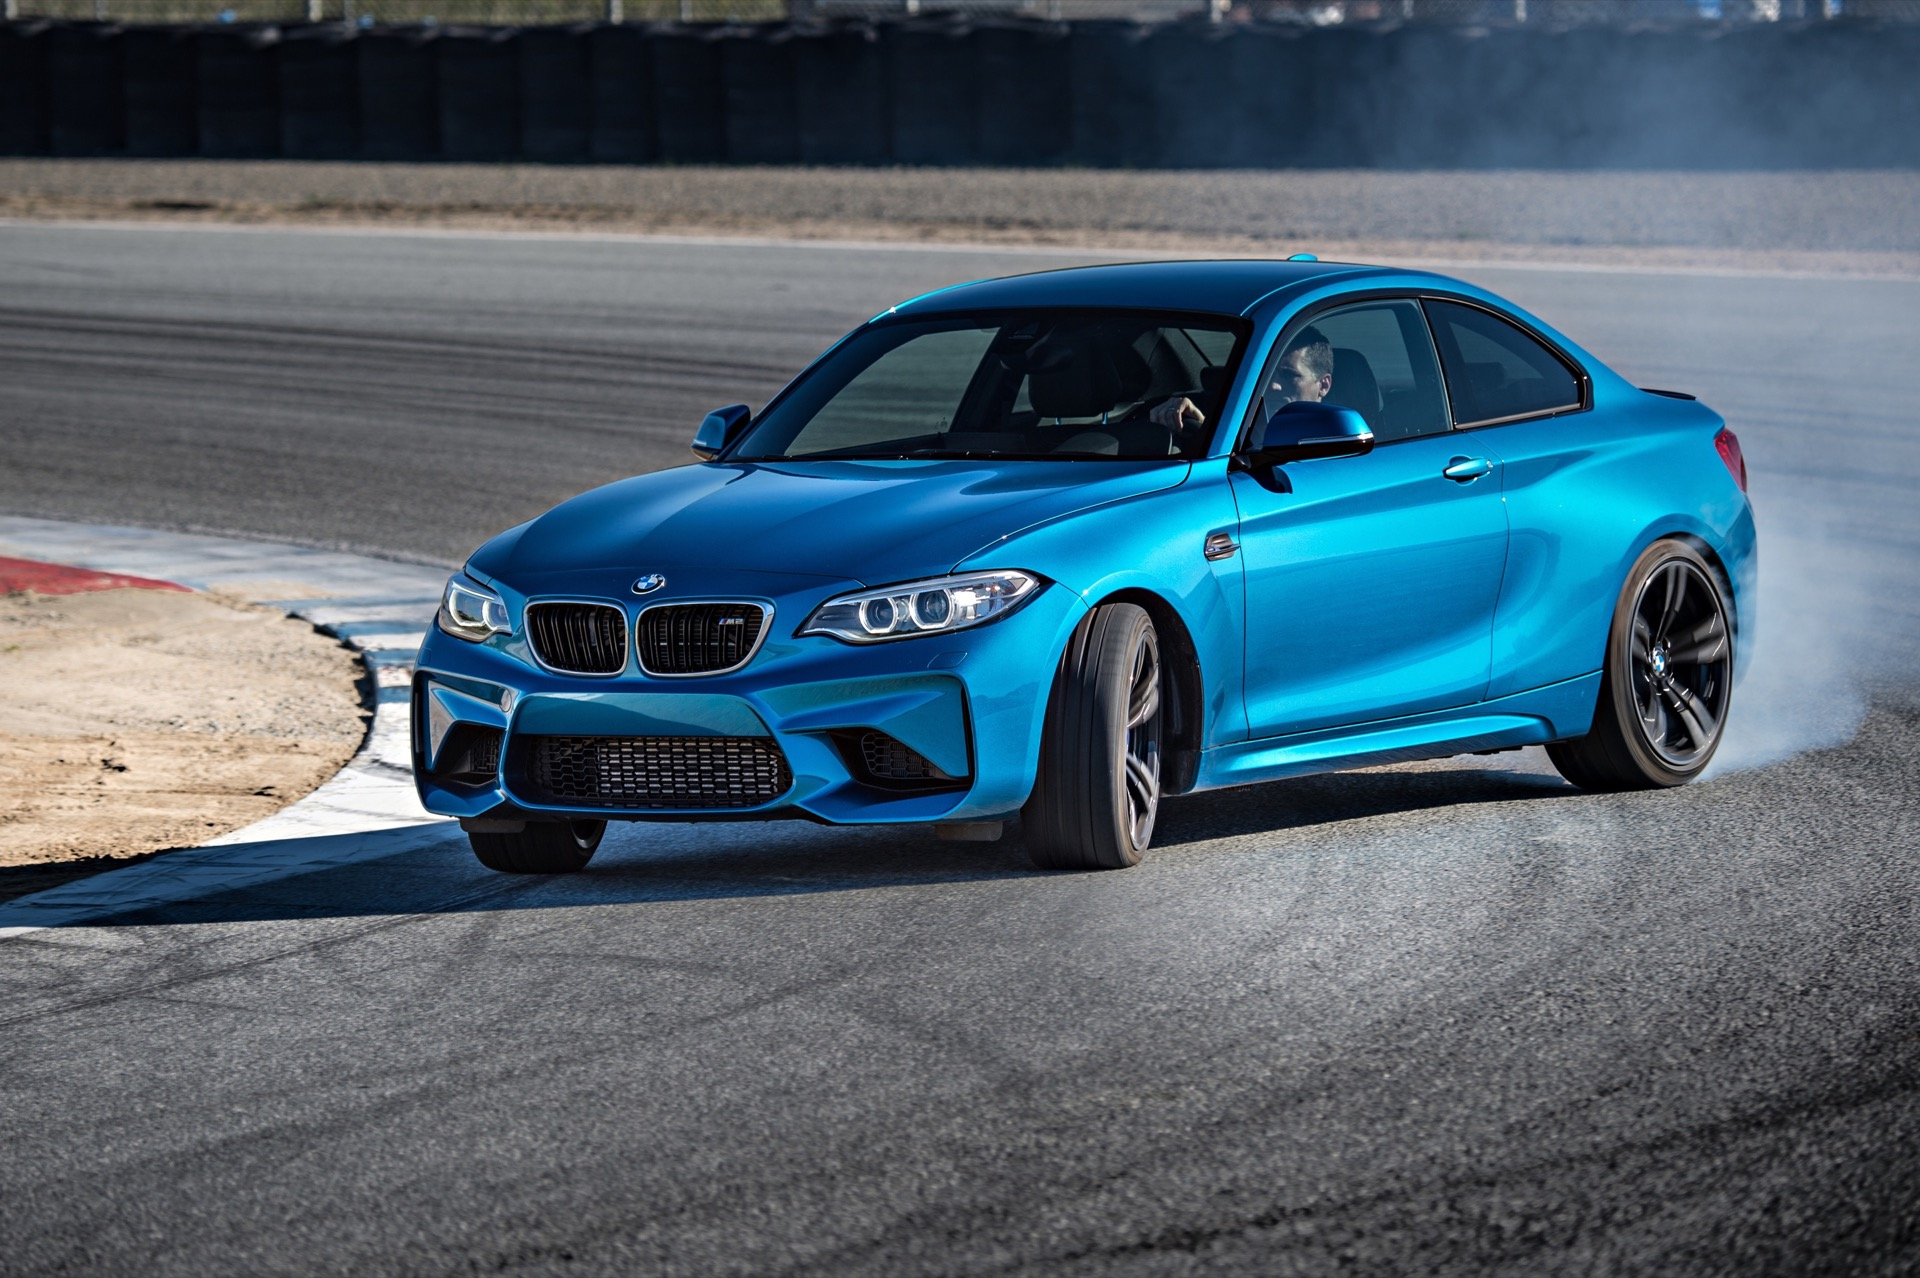 What Is The Best Car To Buy: BMW M2: Motor Authority's Best Car To Buy 2017